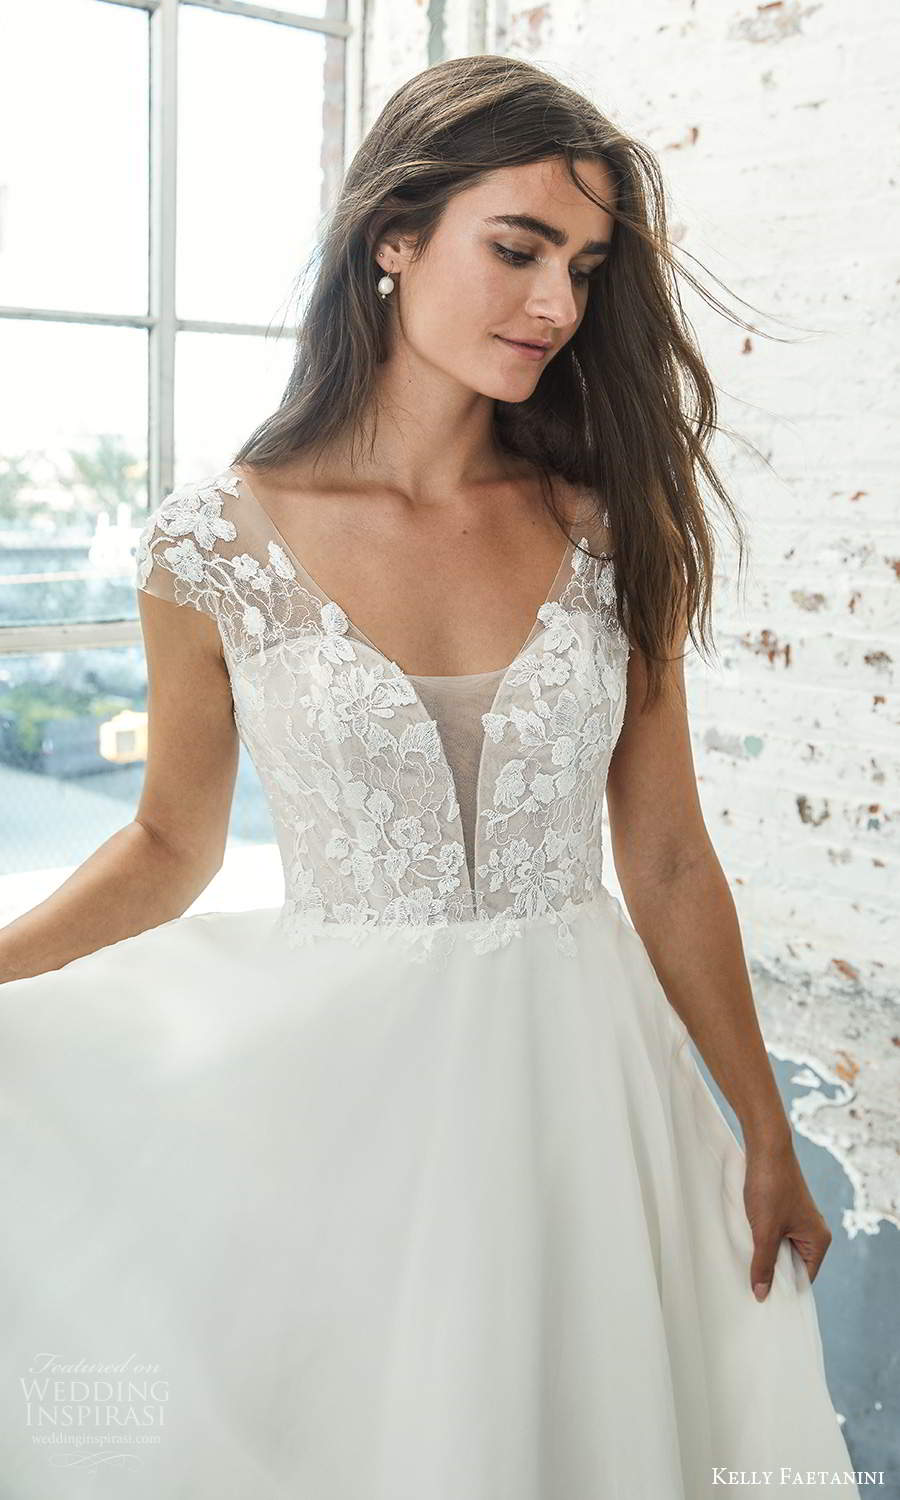 kelly faetanini 2021 bridal sheer cap sleeves plunging v neckline embellished lace bodice a line ball gown wedding dress chapel train (2) mv